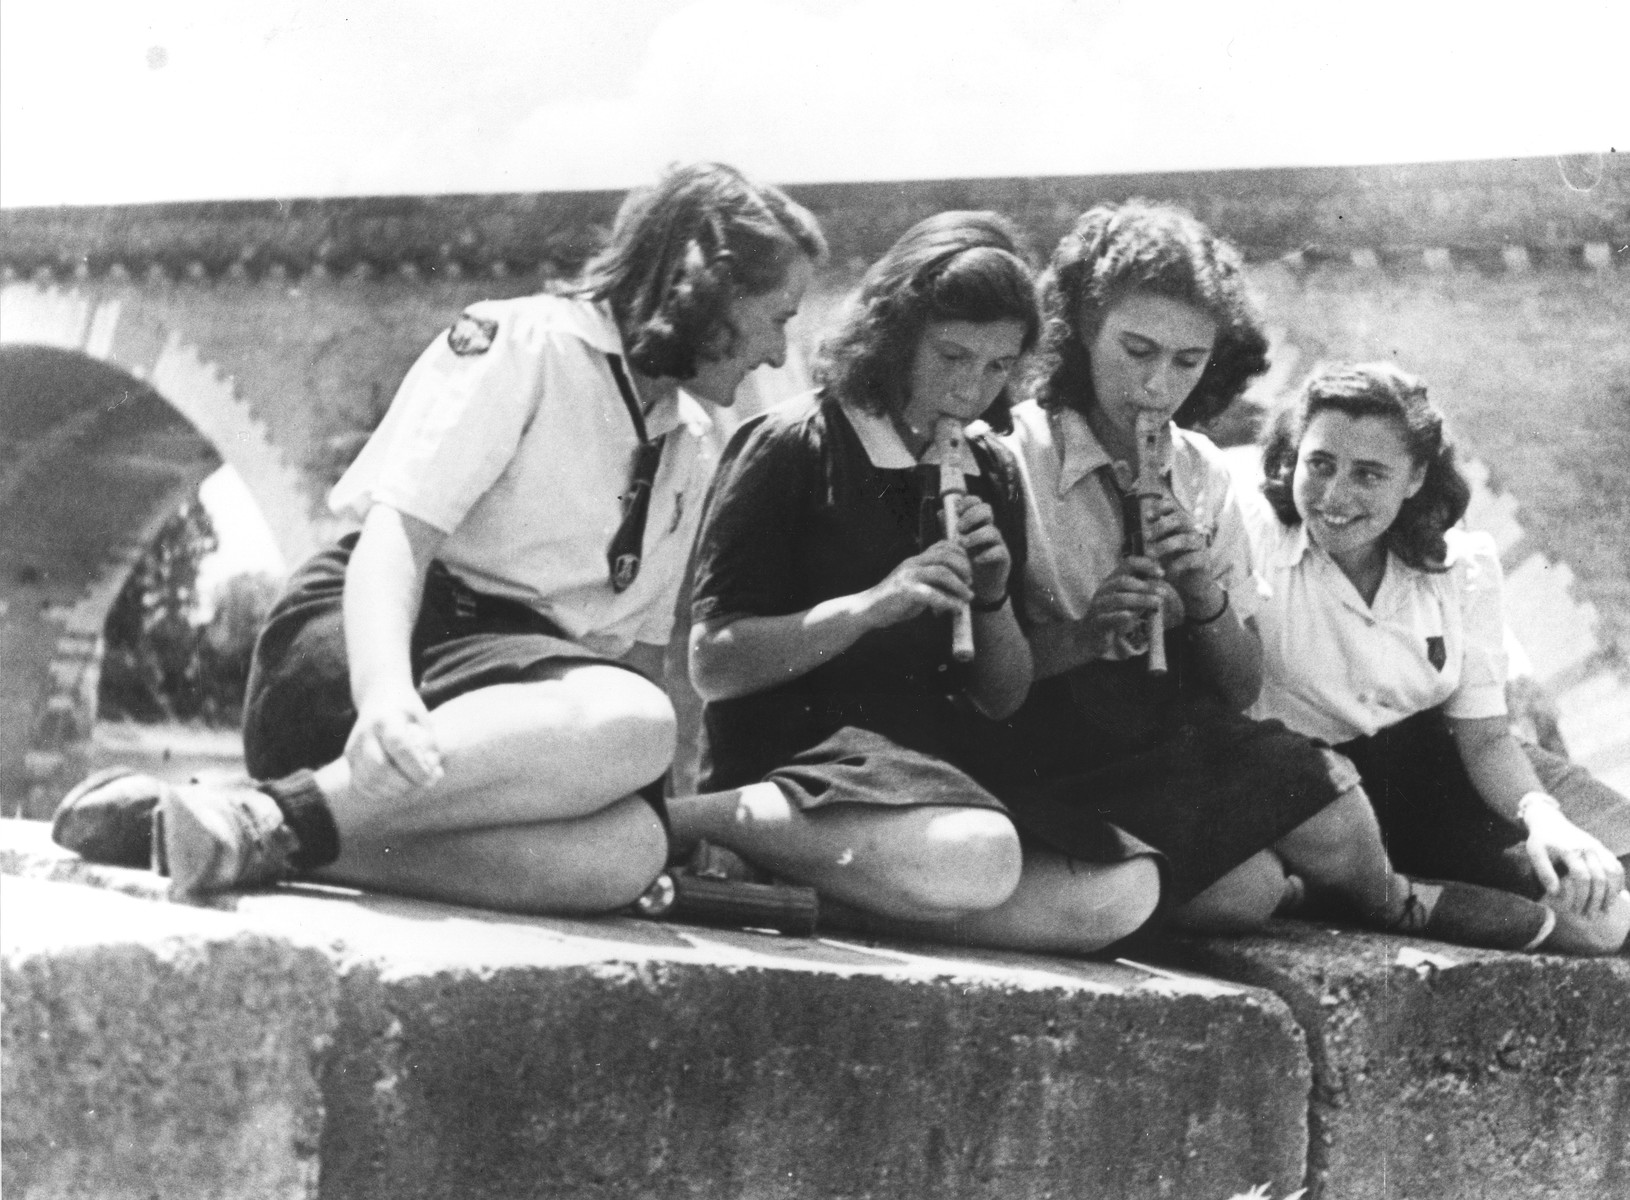 A group of Jewish girl scouts living at the Moissac children's home, play recorders on a riverbank.    Pictured on the far right is Edith Loeb.  On the far left is Trudy Elkan Kuhn.